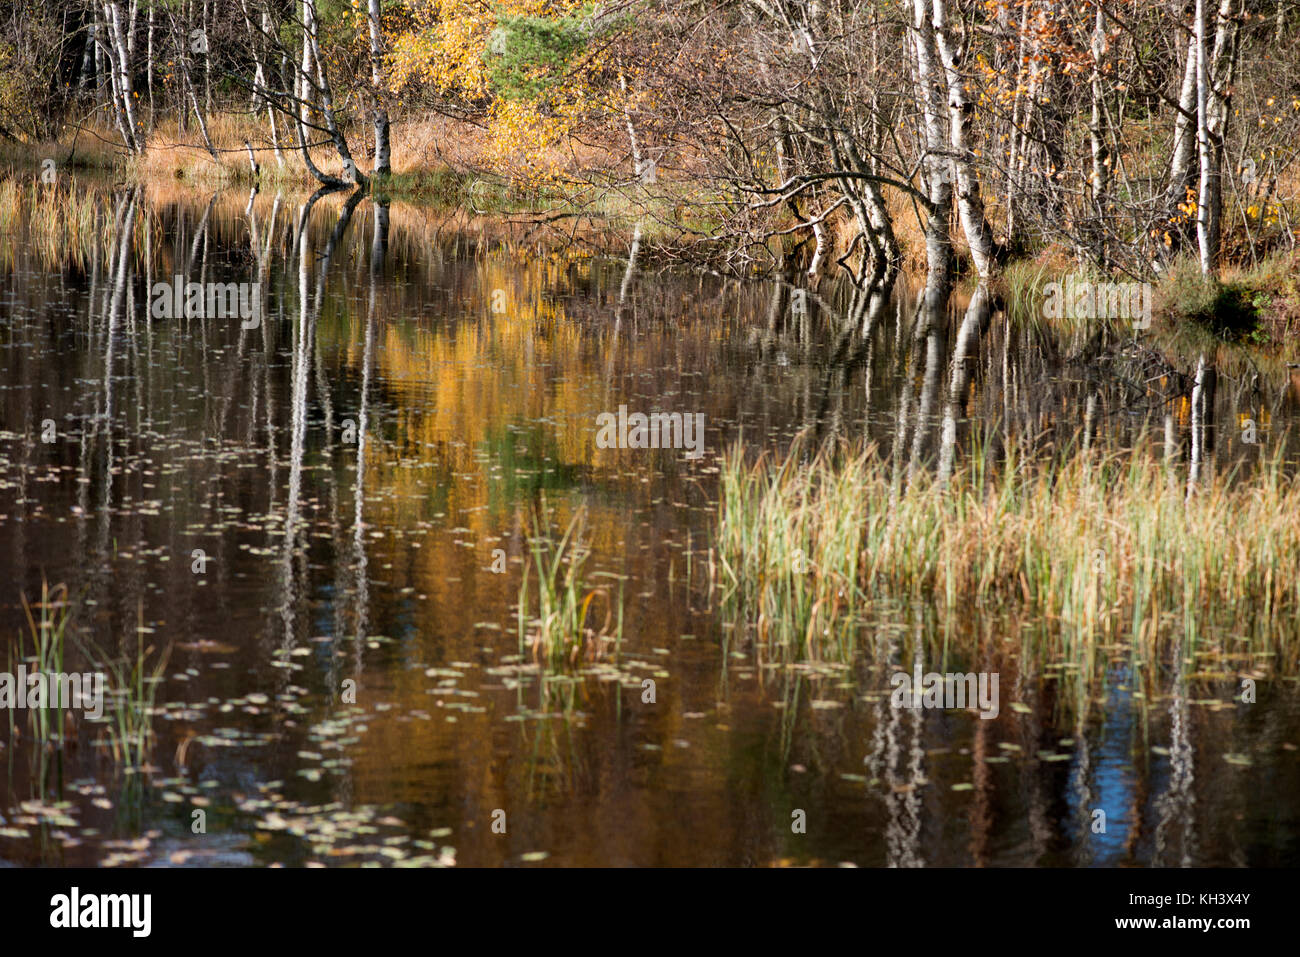 Plants and nature in Sweden Stock Photo